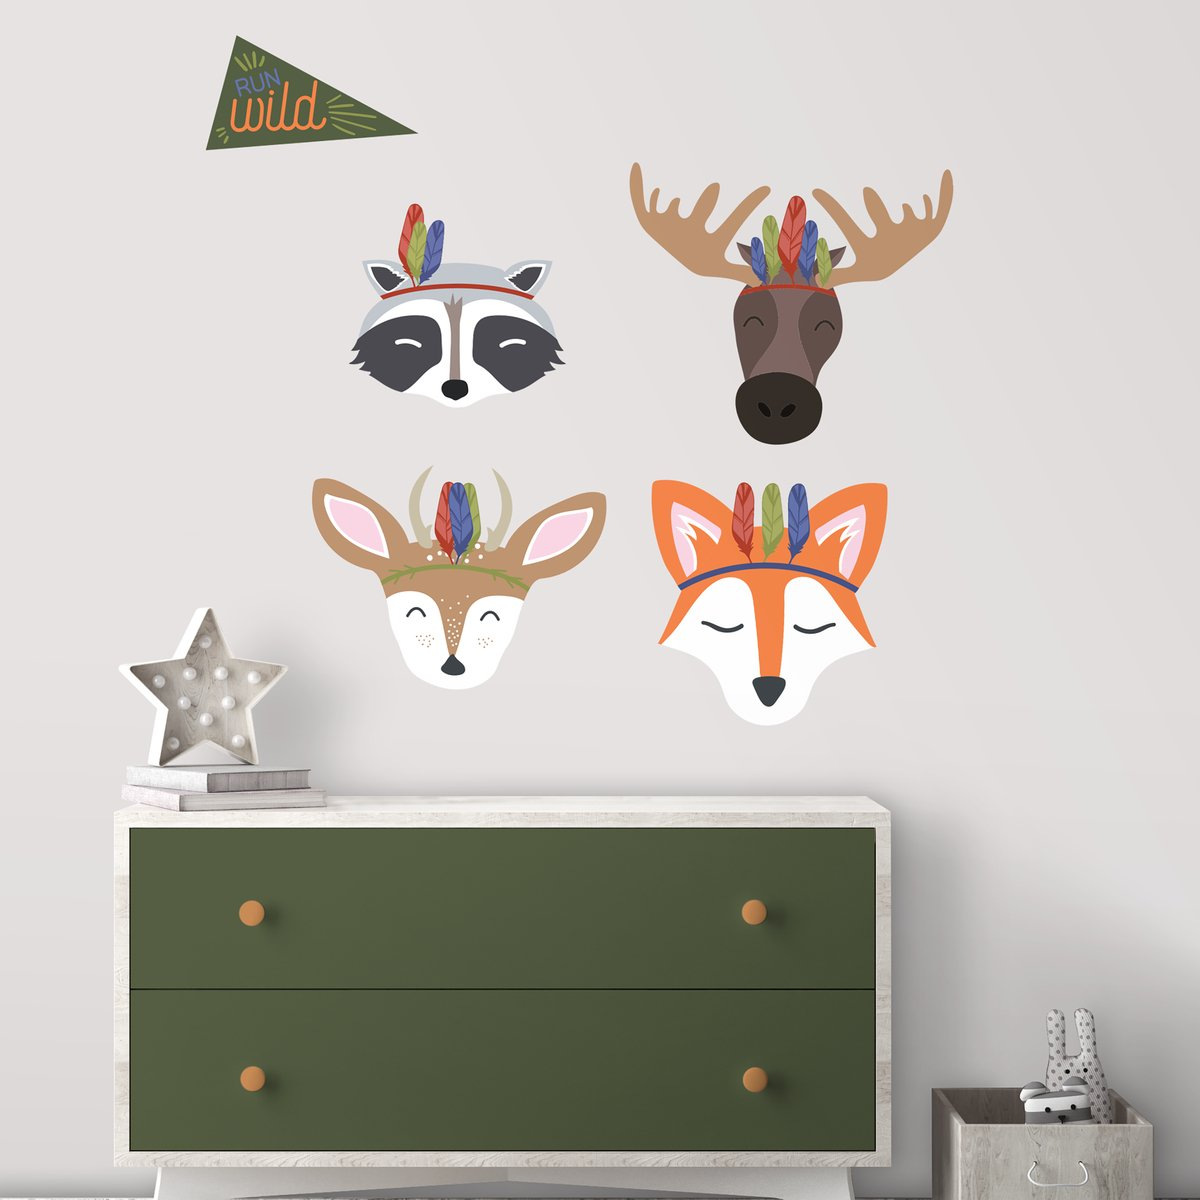 Vinilo Decorativo Pared [7BY8VFSW] animales del bosque